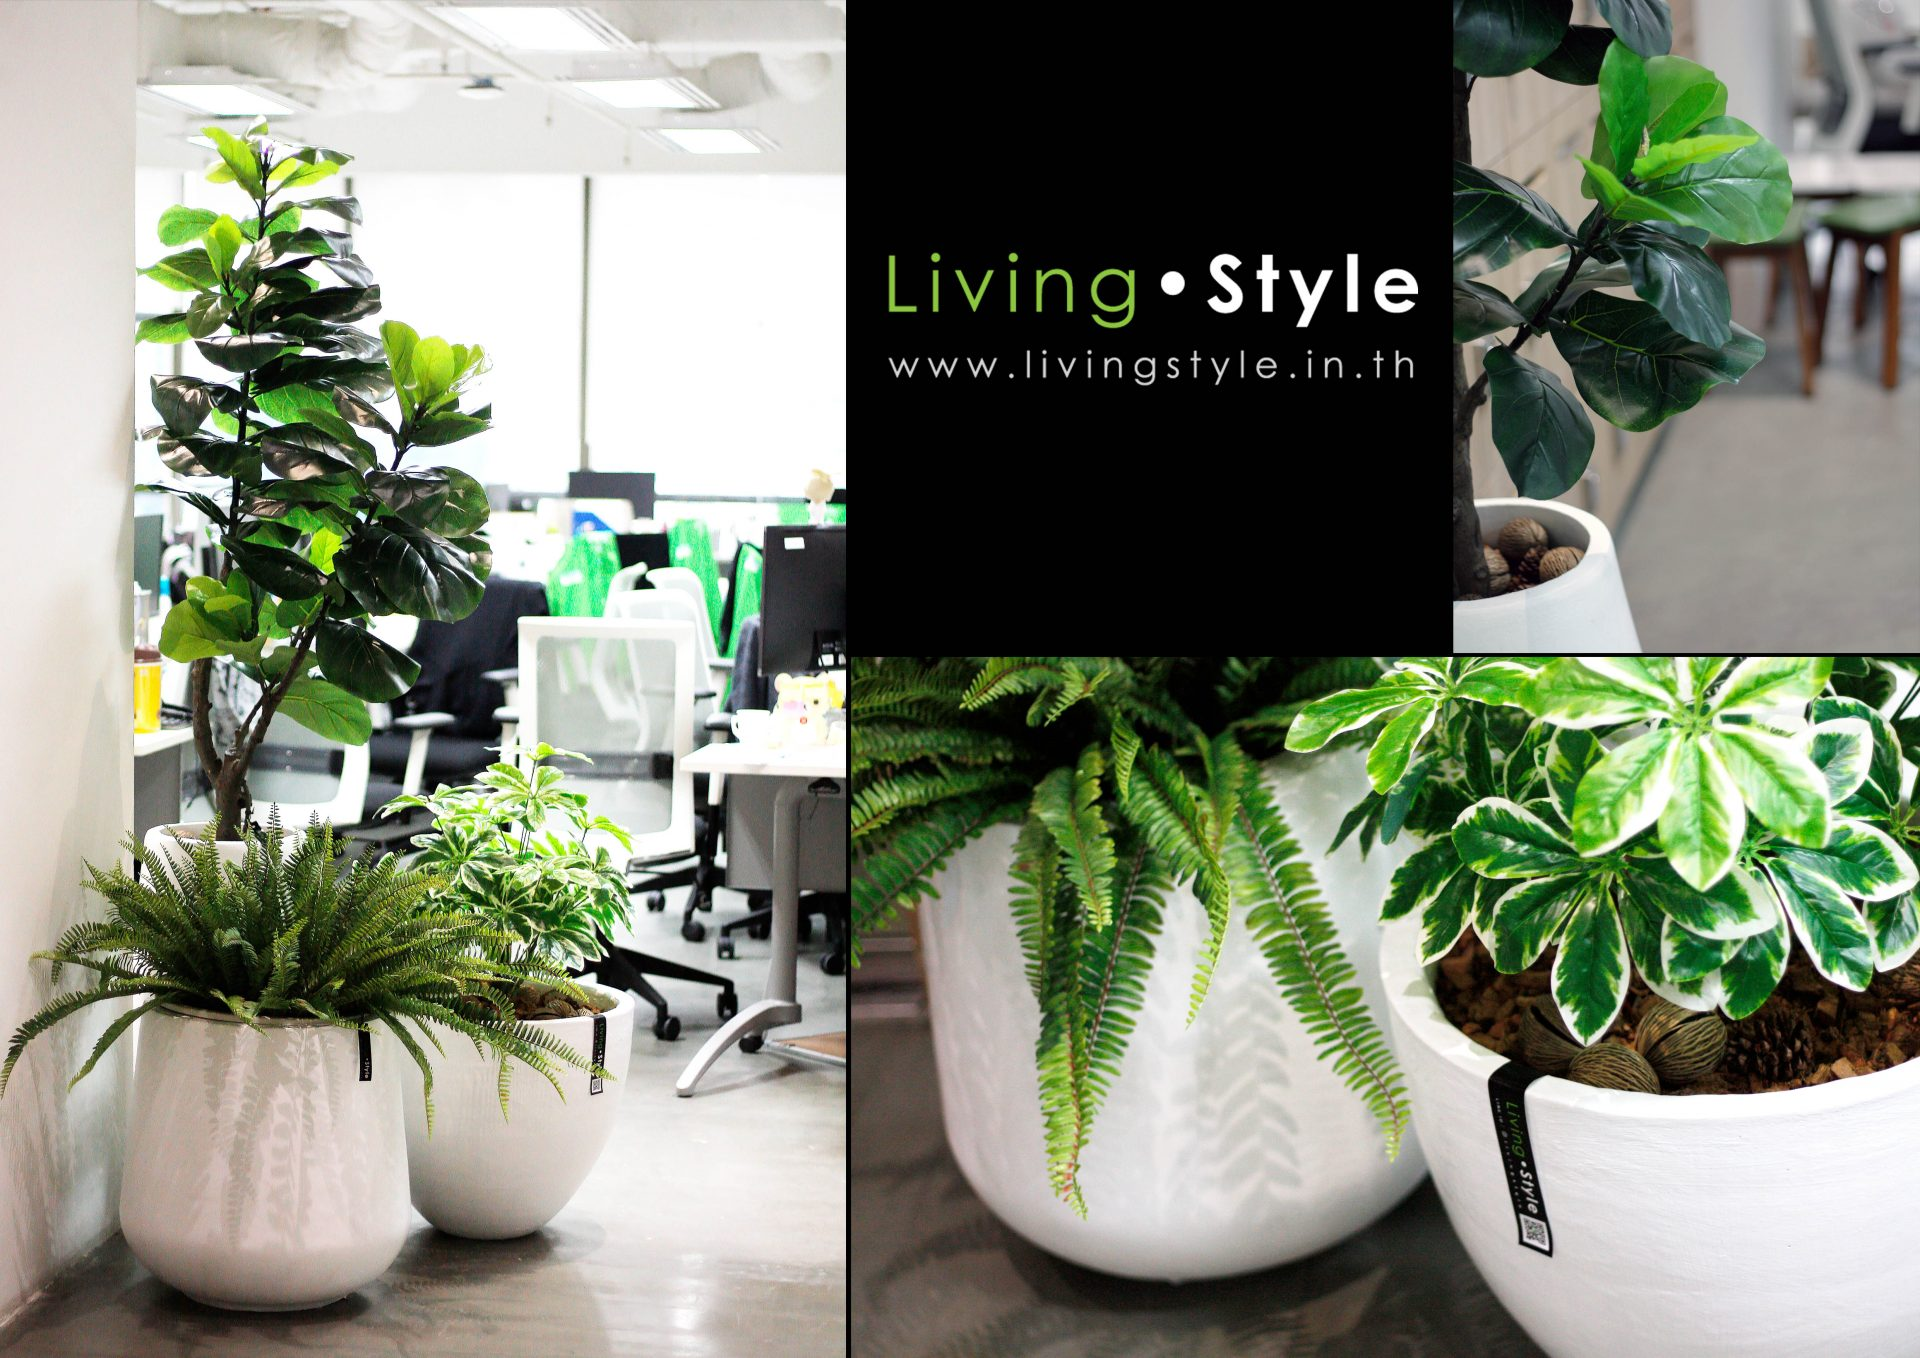 Livingstyle 016 catalog